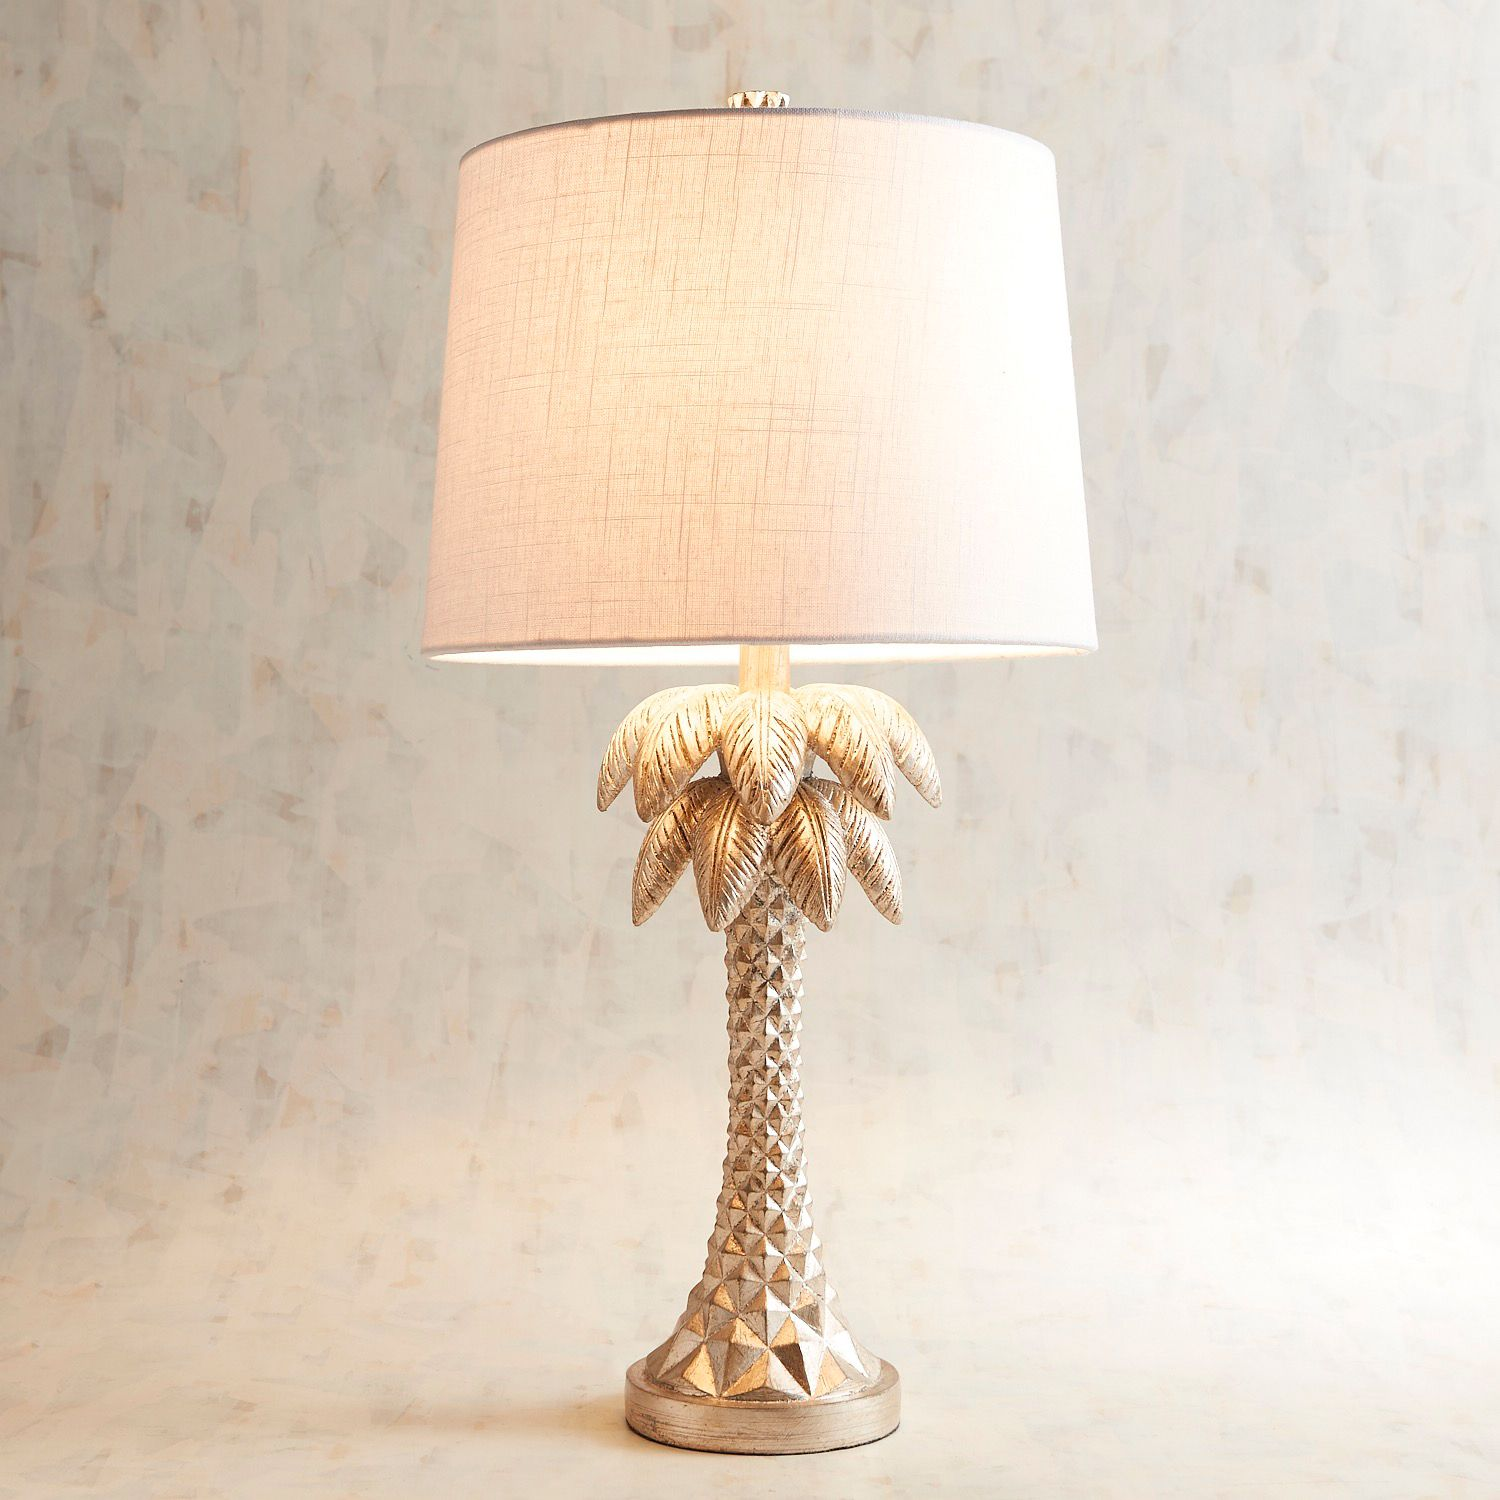 palm tree champagne table lamp pier imports one accent lamps narrow tray drop leaf with folding chair storage cordless for living room cool retro furniture solid wood coffee and